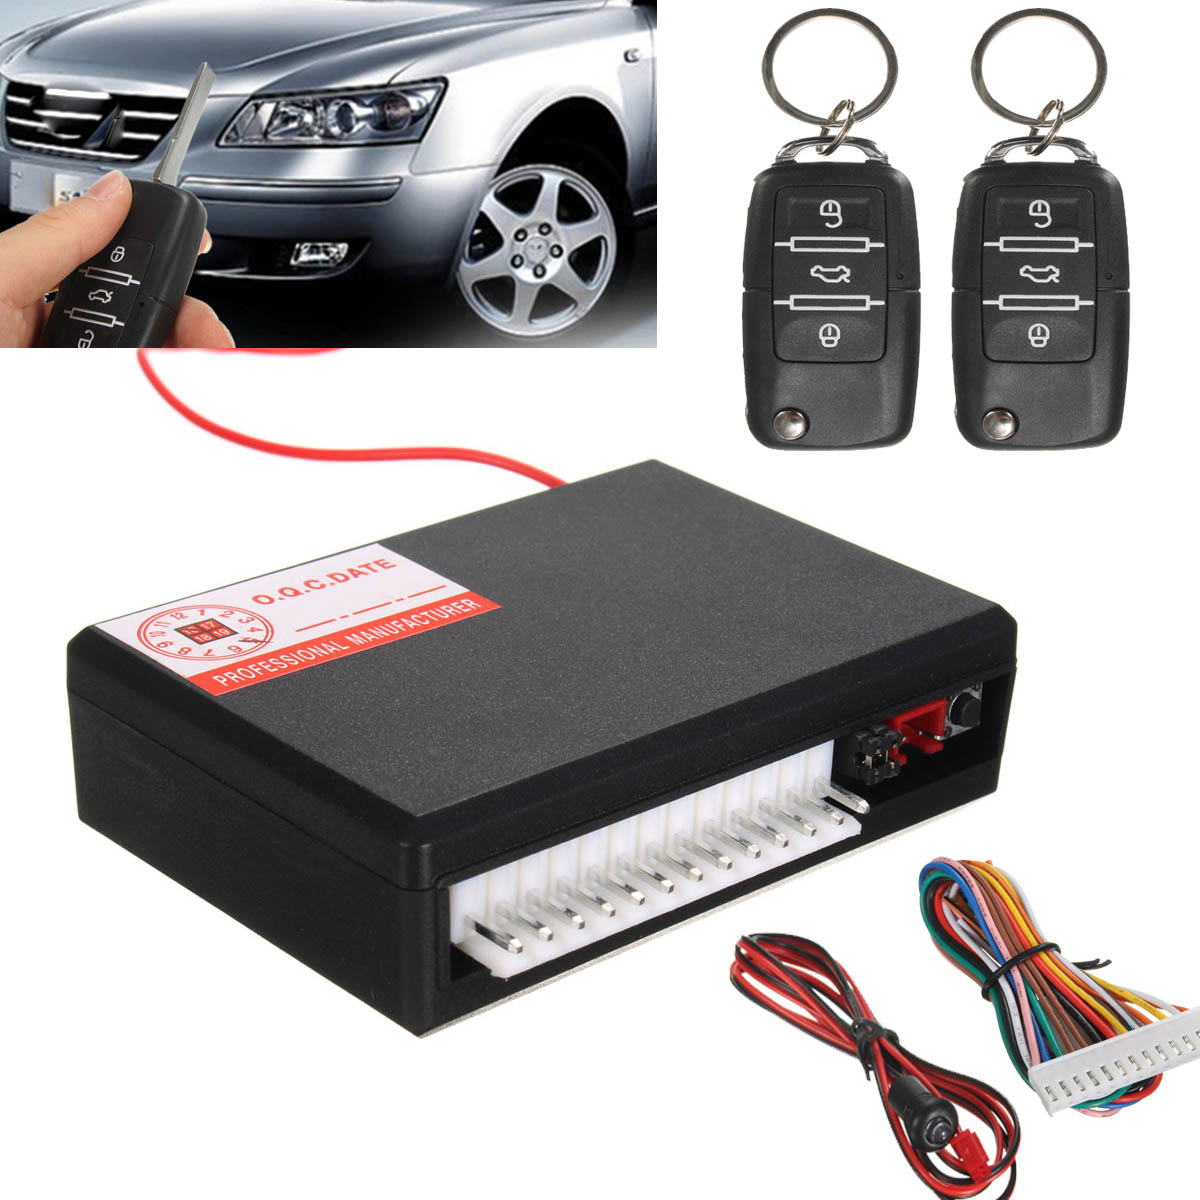 2017 New Universal Car Vehicle Remote Control Central Kit Door Lock Locking Keyless Entry Theft System<br><br>Aliexpress